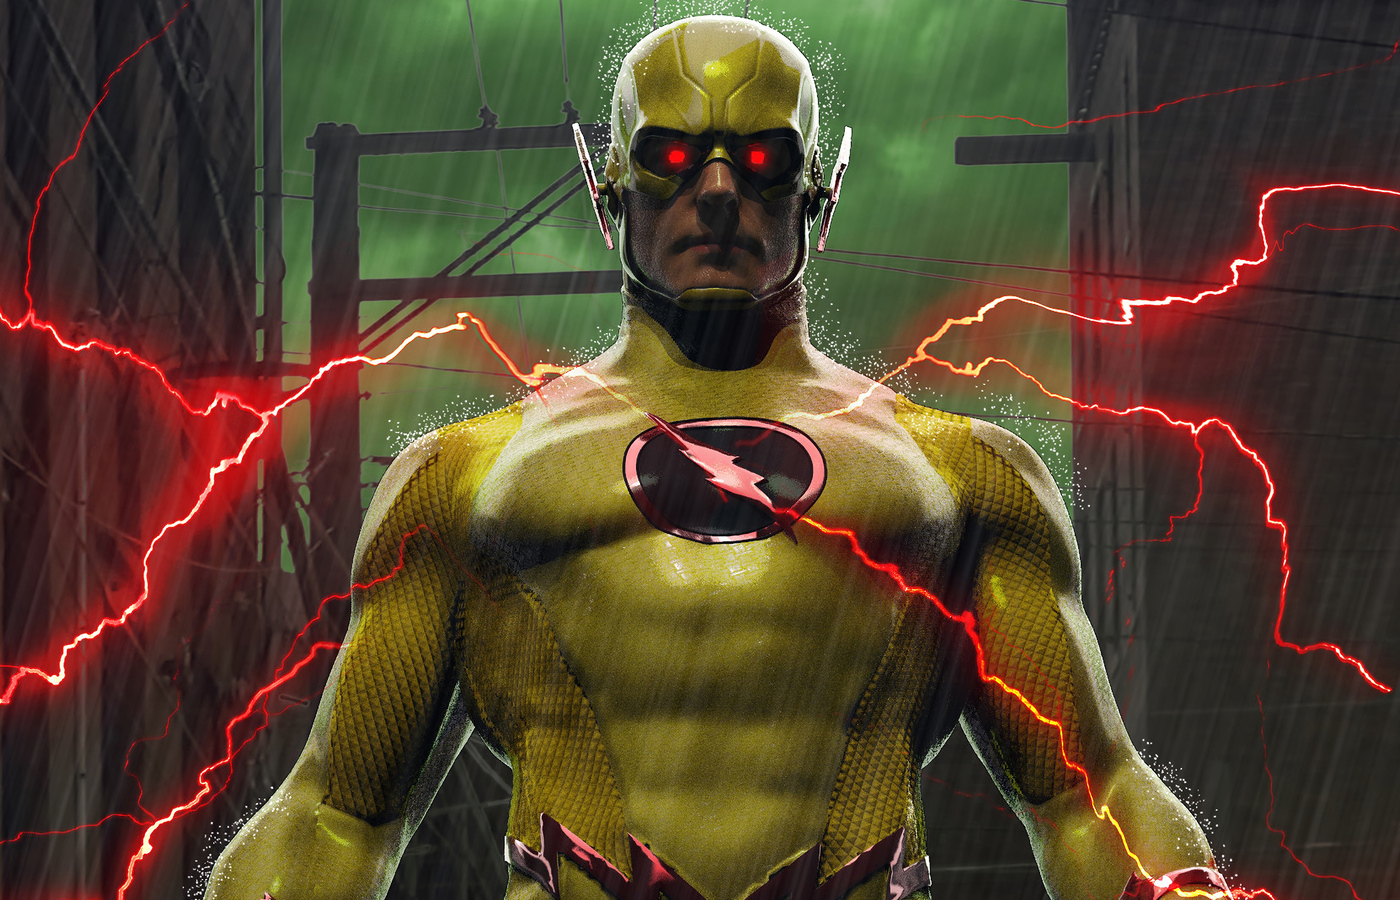 1400x900 Reverse Flash 1400x900 Resolution Hd 4k Wallpapers